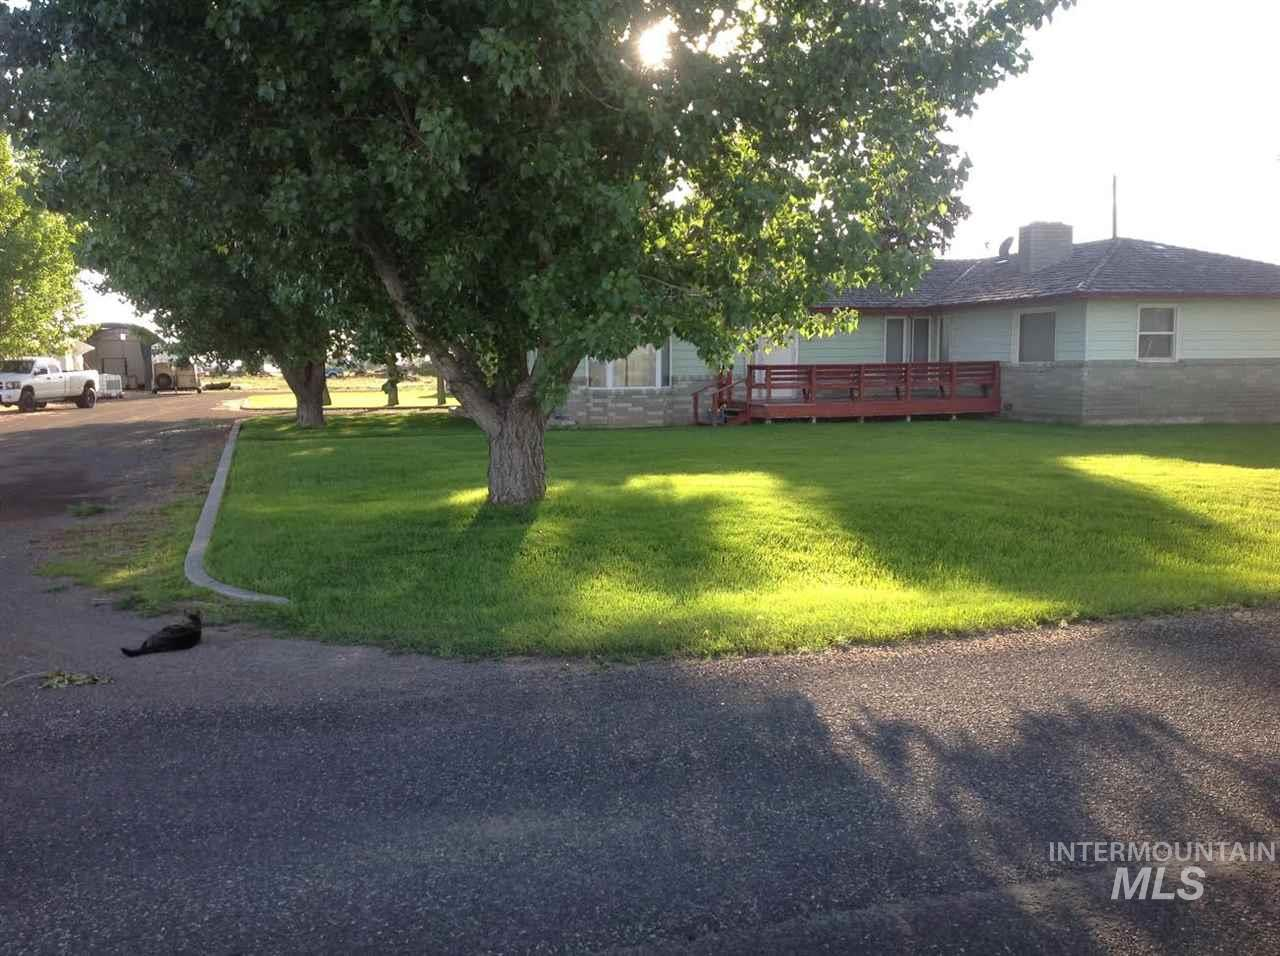 Single Family Home for Sale at 1997 E 1550 South Gooding, Idaho 83330